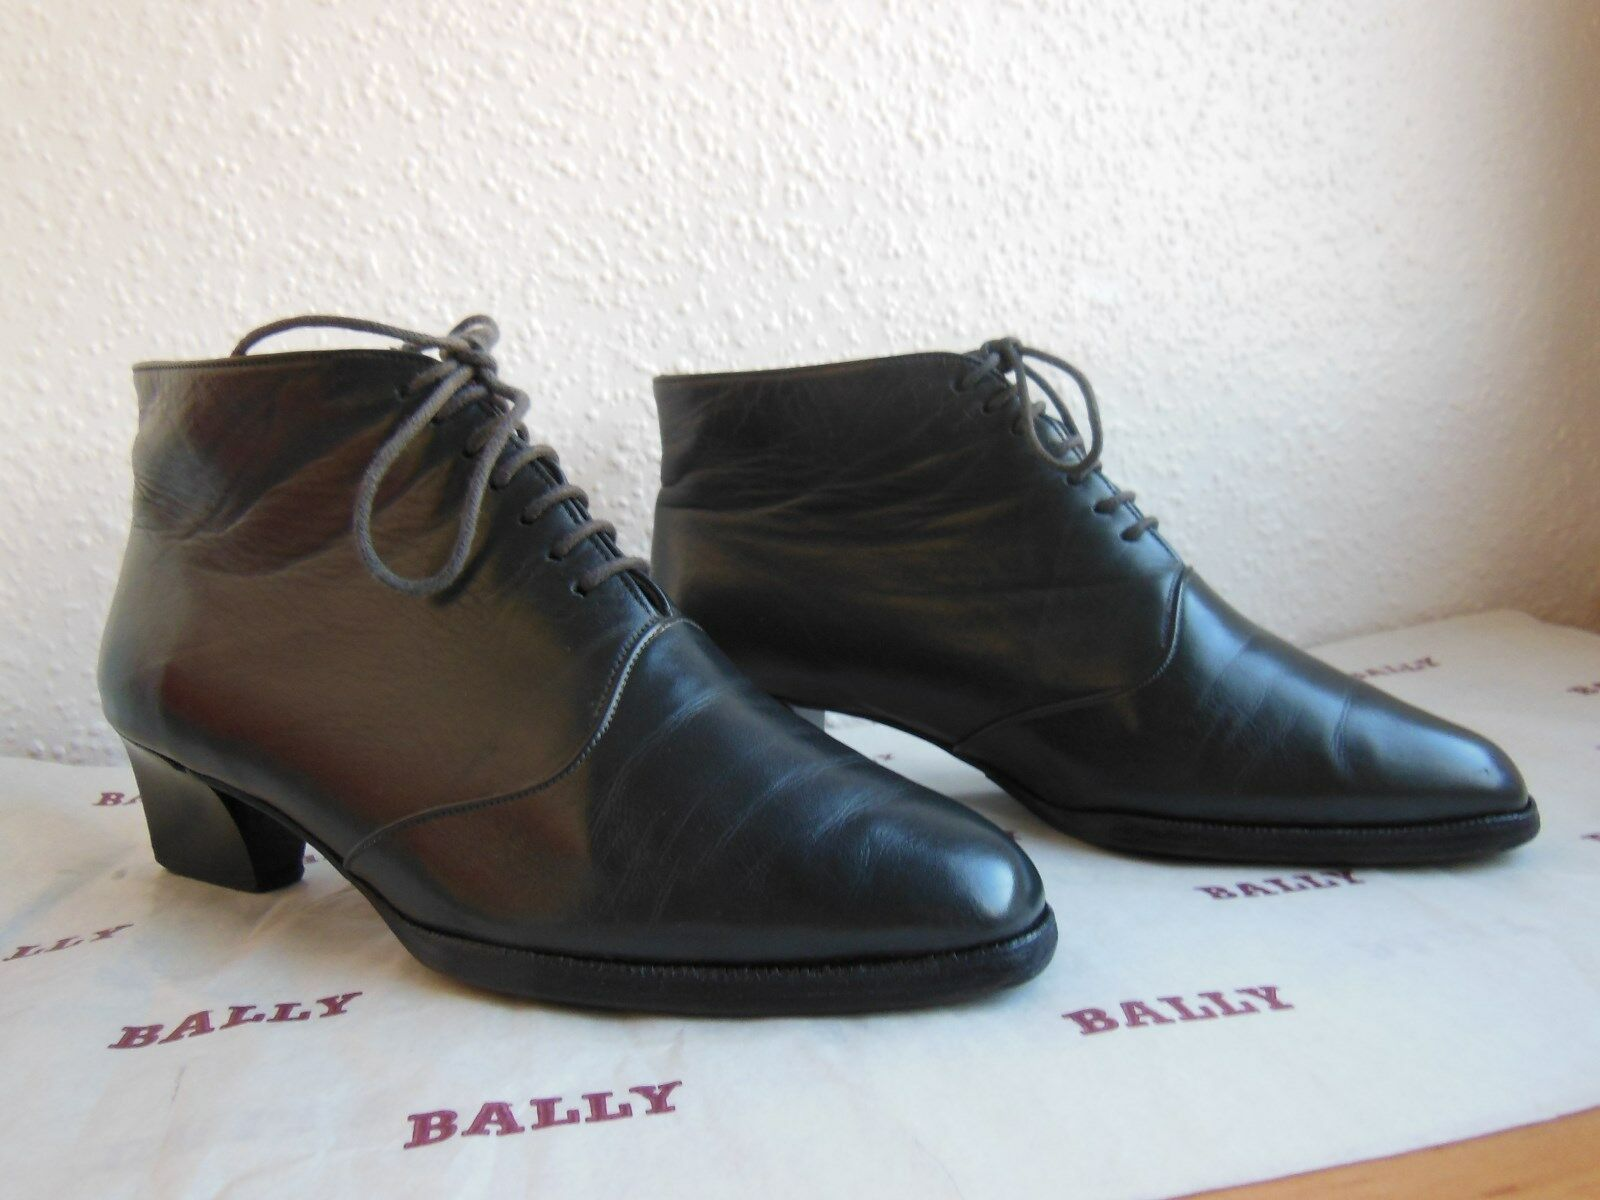 BBLLY Made in France - Stiefeletten